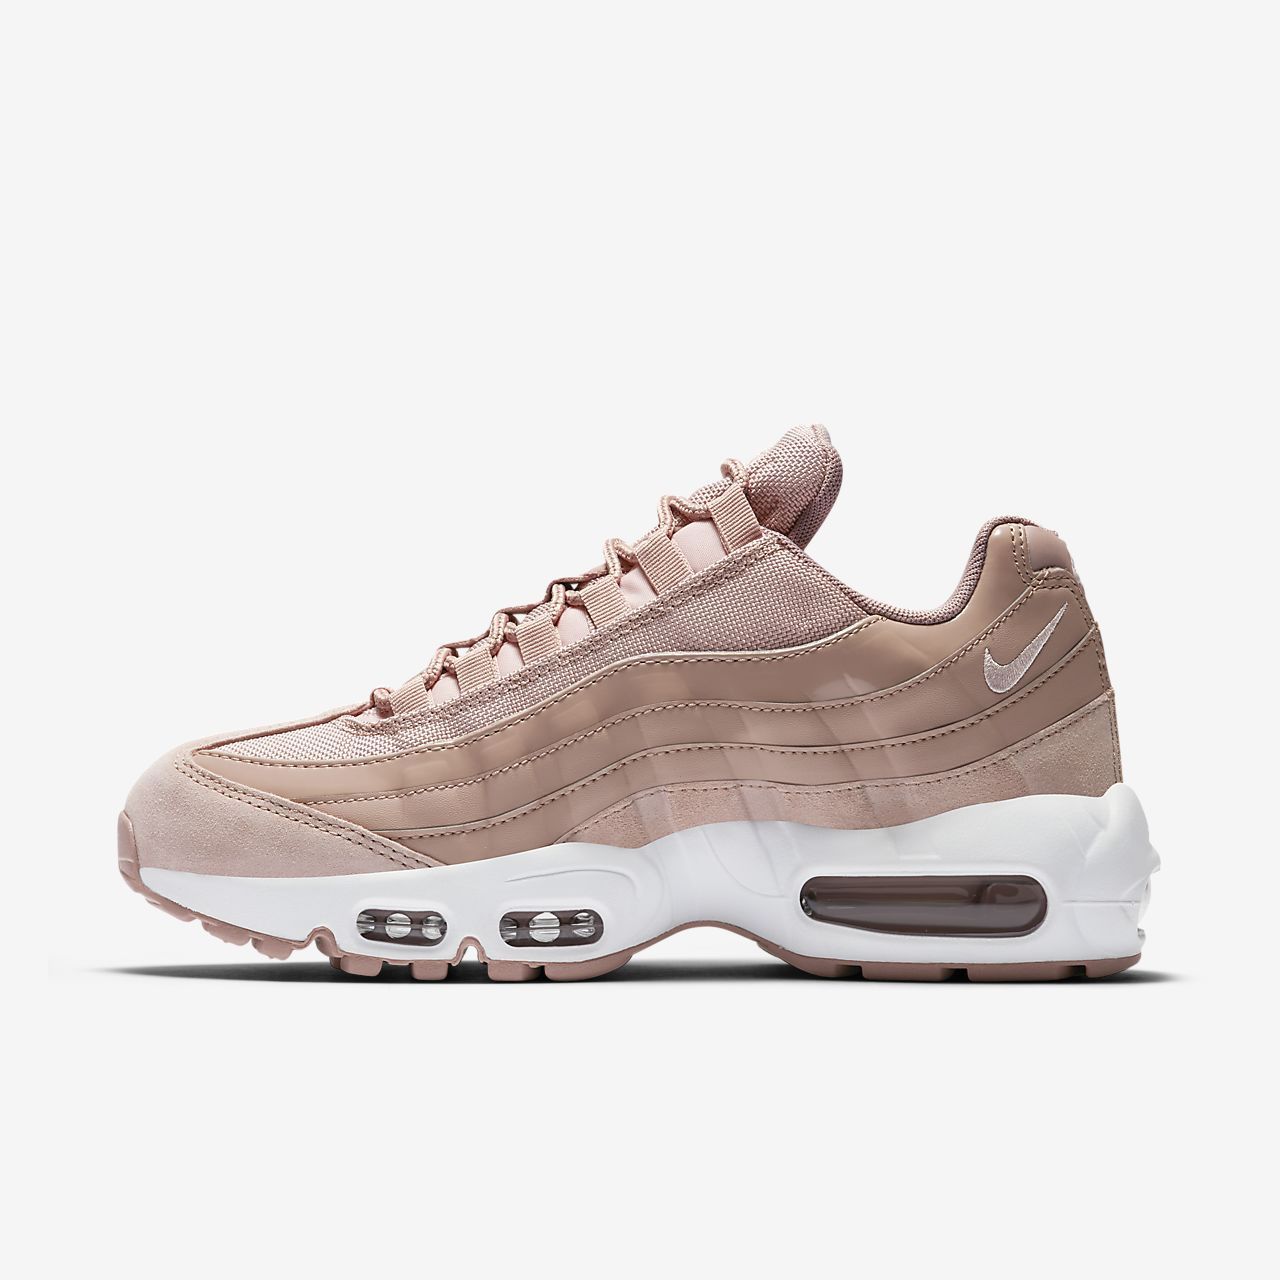 nike 95 air max women's shoes